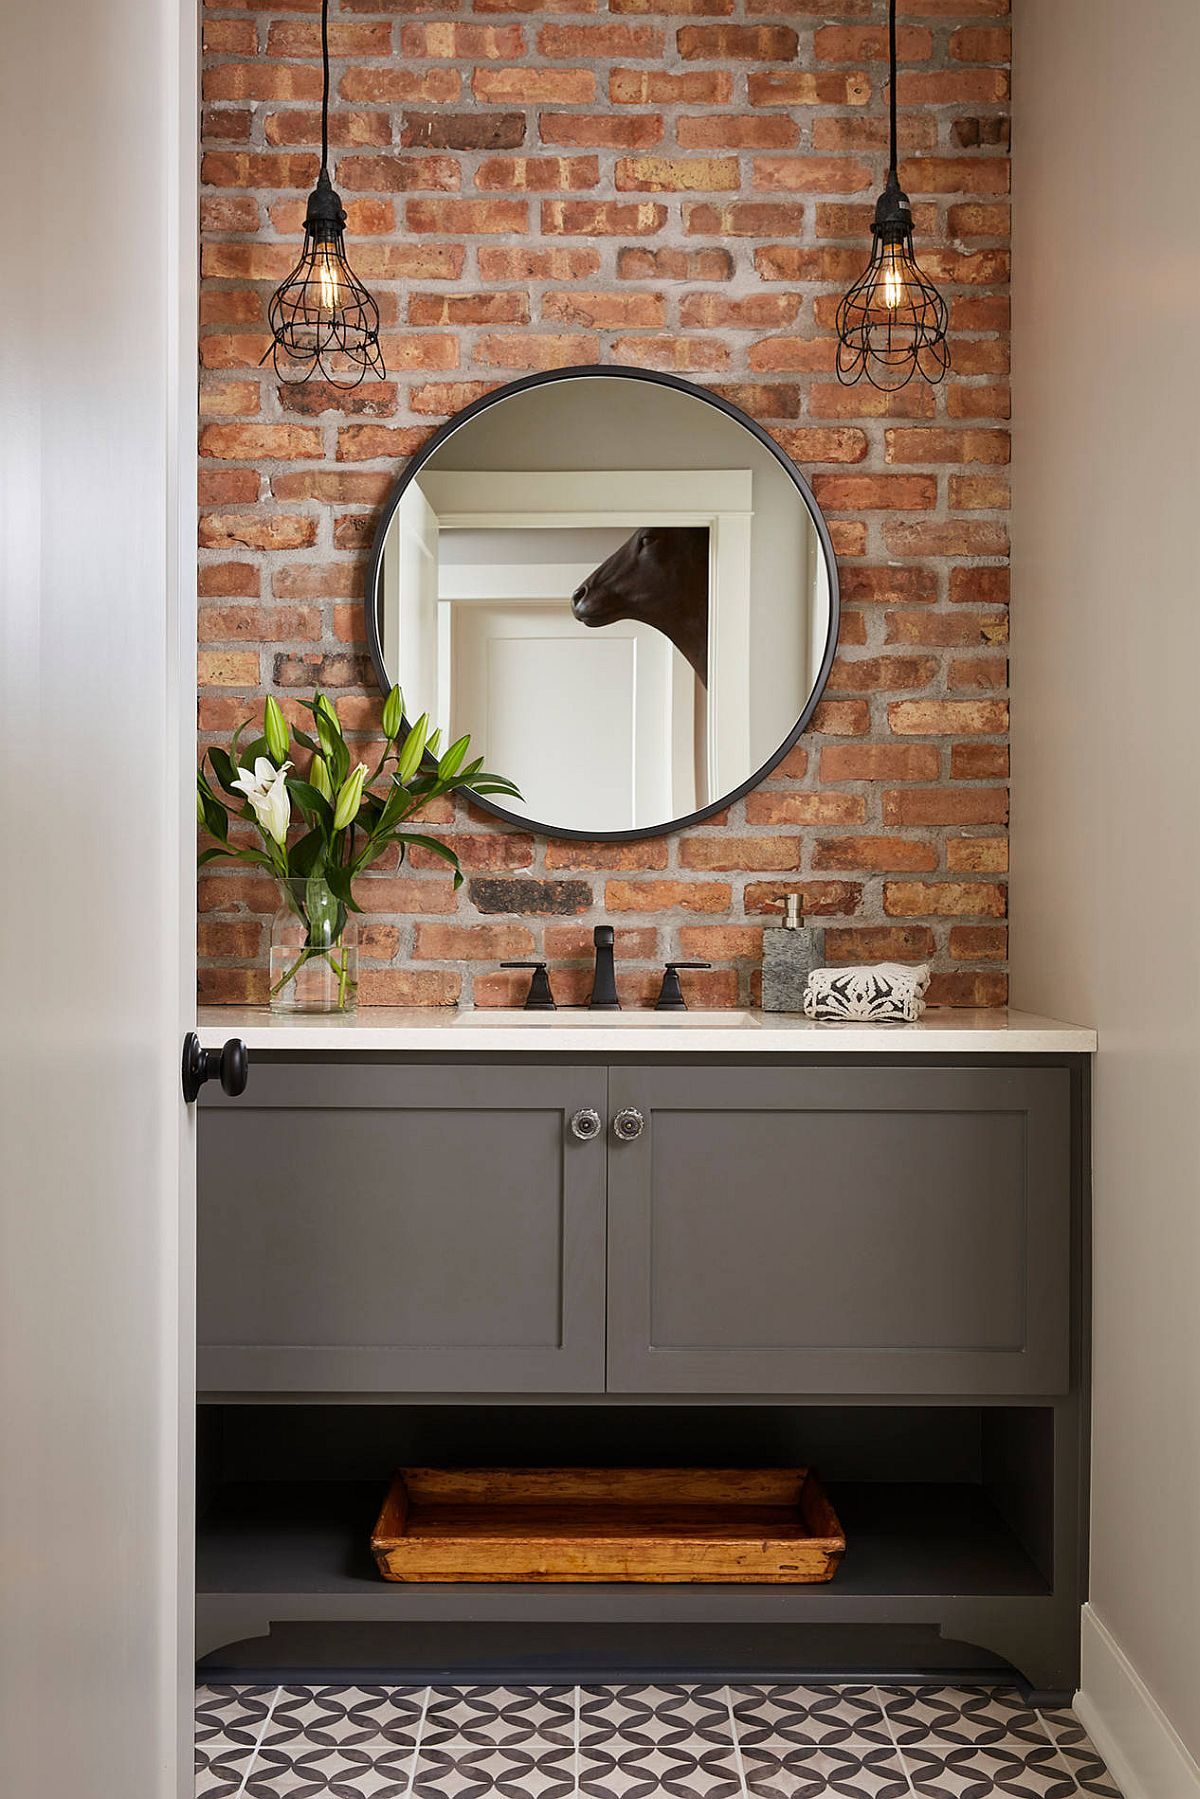 Brick, gray and white combined beautifully in the small modern bathroom